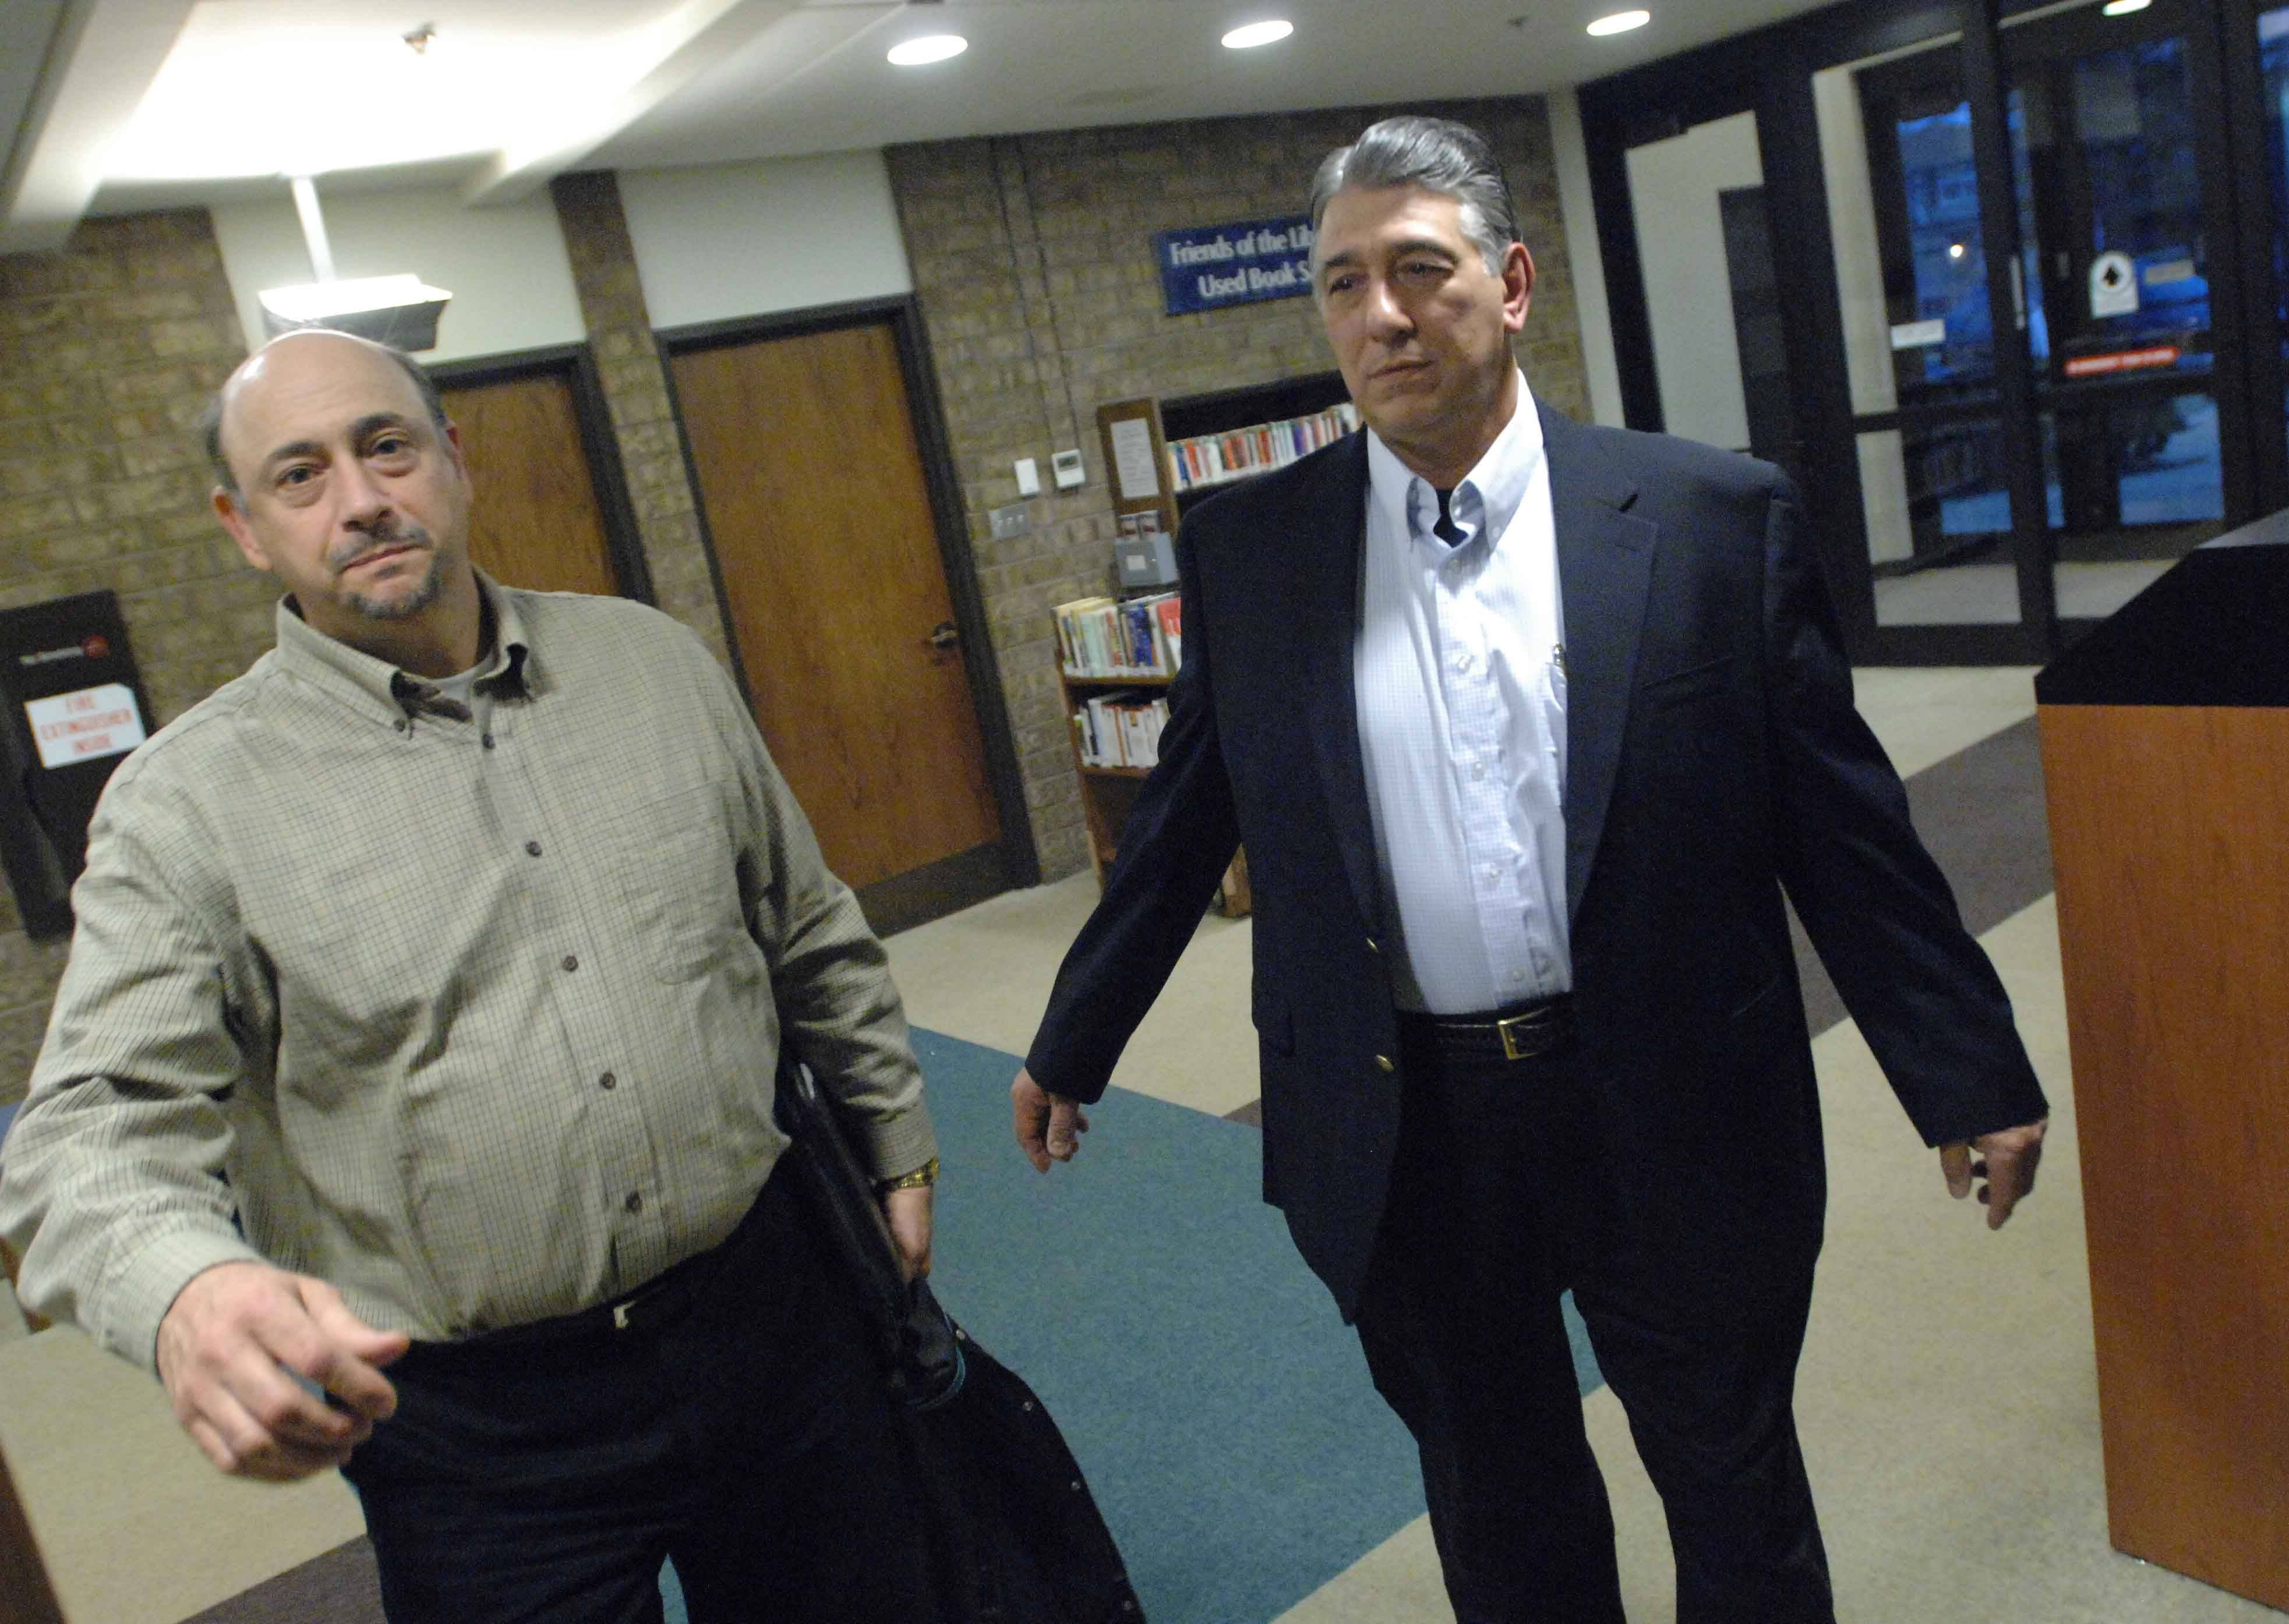 PAUL MICHNA/Pmichna@dailyherald.comDavid DeRango,left, and Dominick Jeffrey enter the Carol Stream Library's human resources meeting Wednesday.